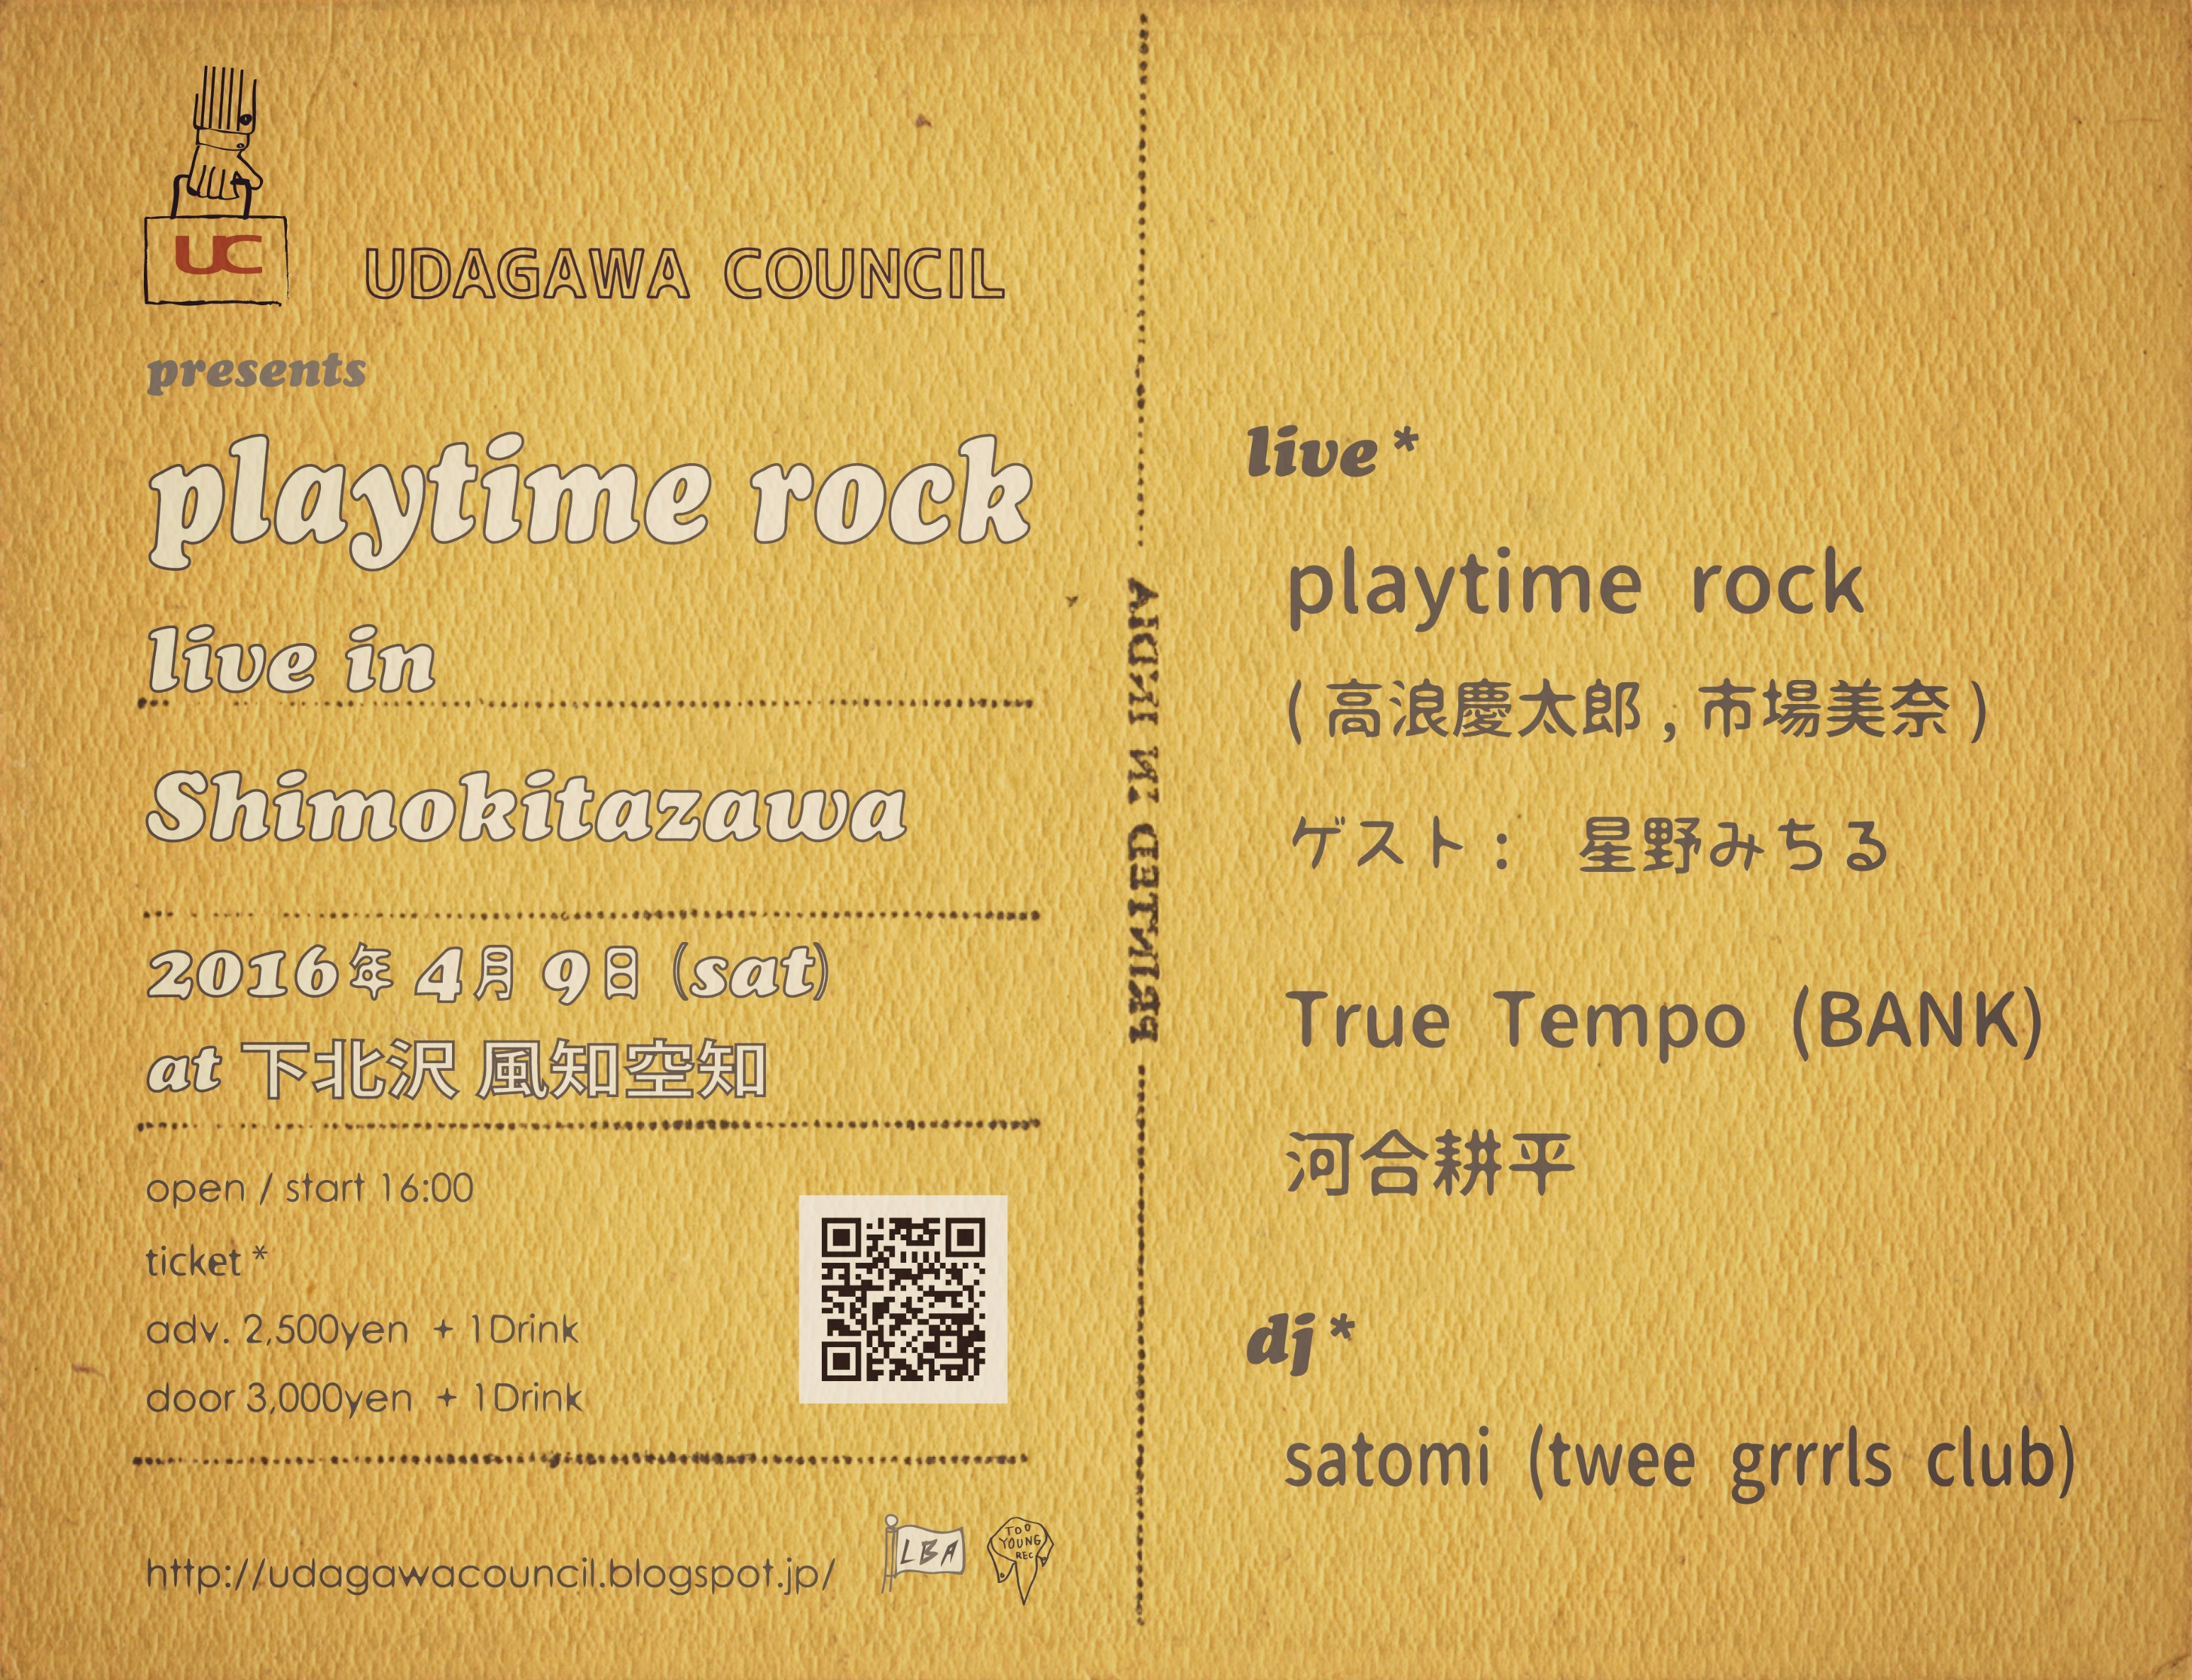 UDAGAWA COUNCIL presents playtime rock Live in 下北沢